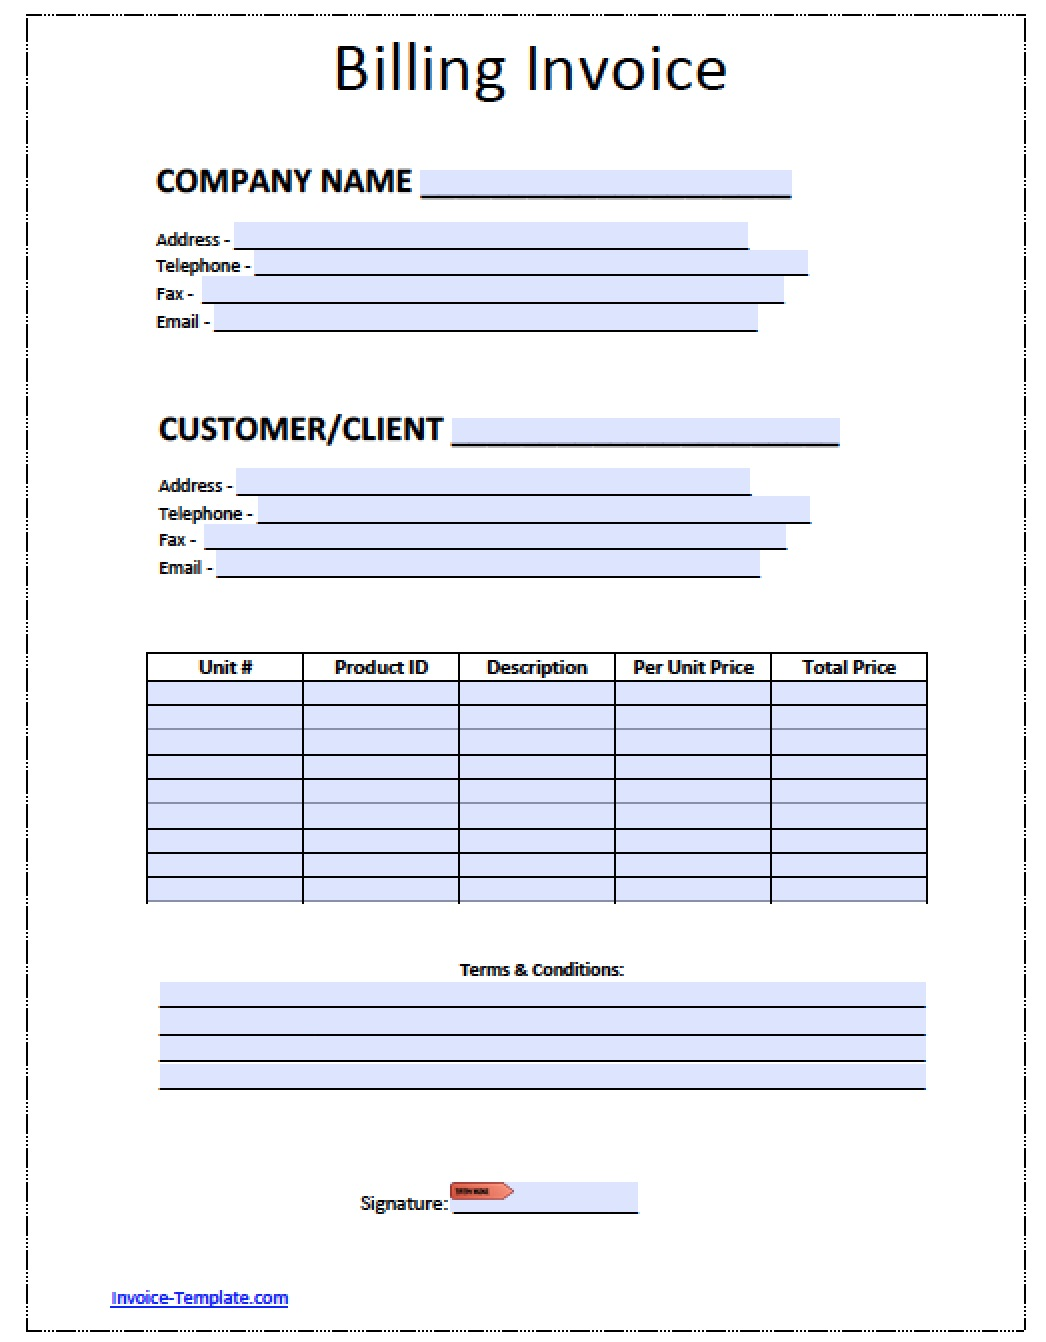 Shopdesignsus  Unusual Billing Invoice Invoices Faq U Cloudflare Support Billing  With Engaging Free Billing Invoice Template  Excel  Pdf  Word Doc  Billing With Appealing Invoice Mail Also Invoice Payment System In Addition Company Invoice Format And Sample Tax Invoice Excel As Well As Invoice Software Open Source Additionally Invoice Format In Excel Download From Happytomco With Shopdesignsus  Engaging Billing Invoice Invoices Faq U Cloudflare Support Billing  With Appealing Free Billing Invoice Template  Excel  Pdf  Word Doc  Billing And Unusual Invoice Mail Also Invoice Payment System In Addition Company Invoice Format From Happytomco